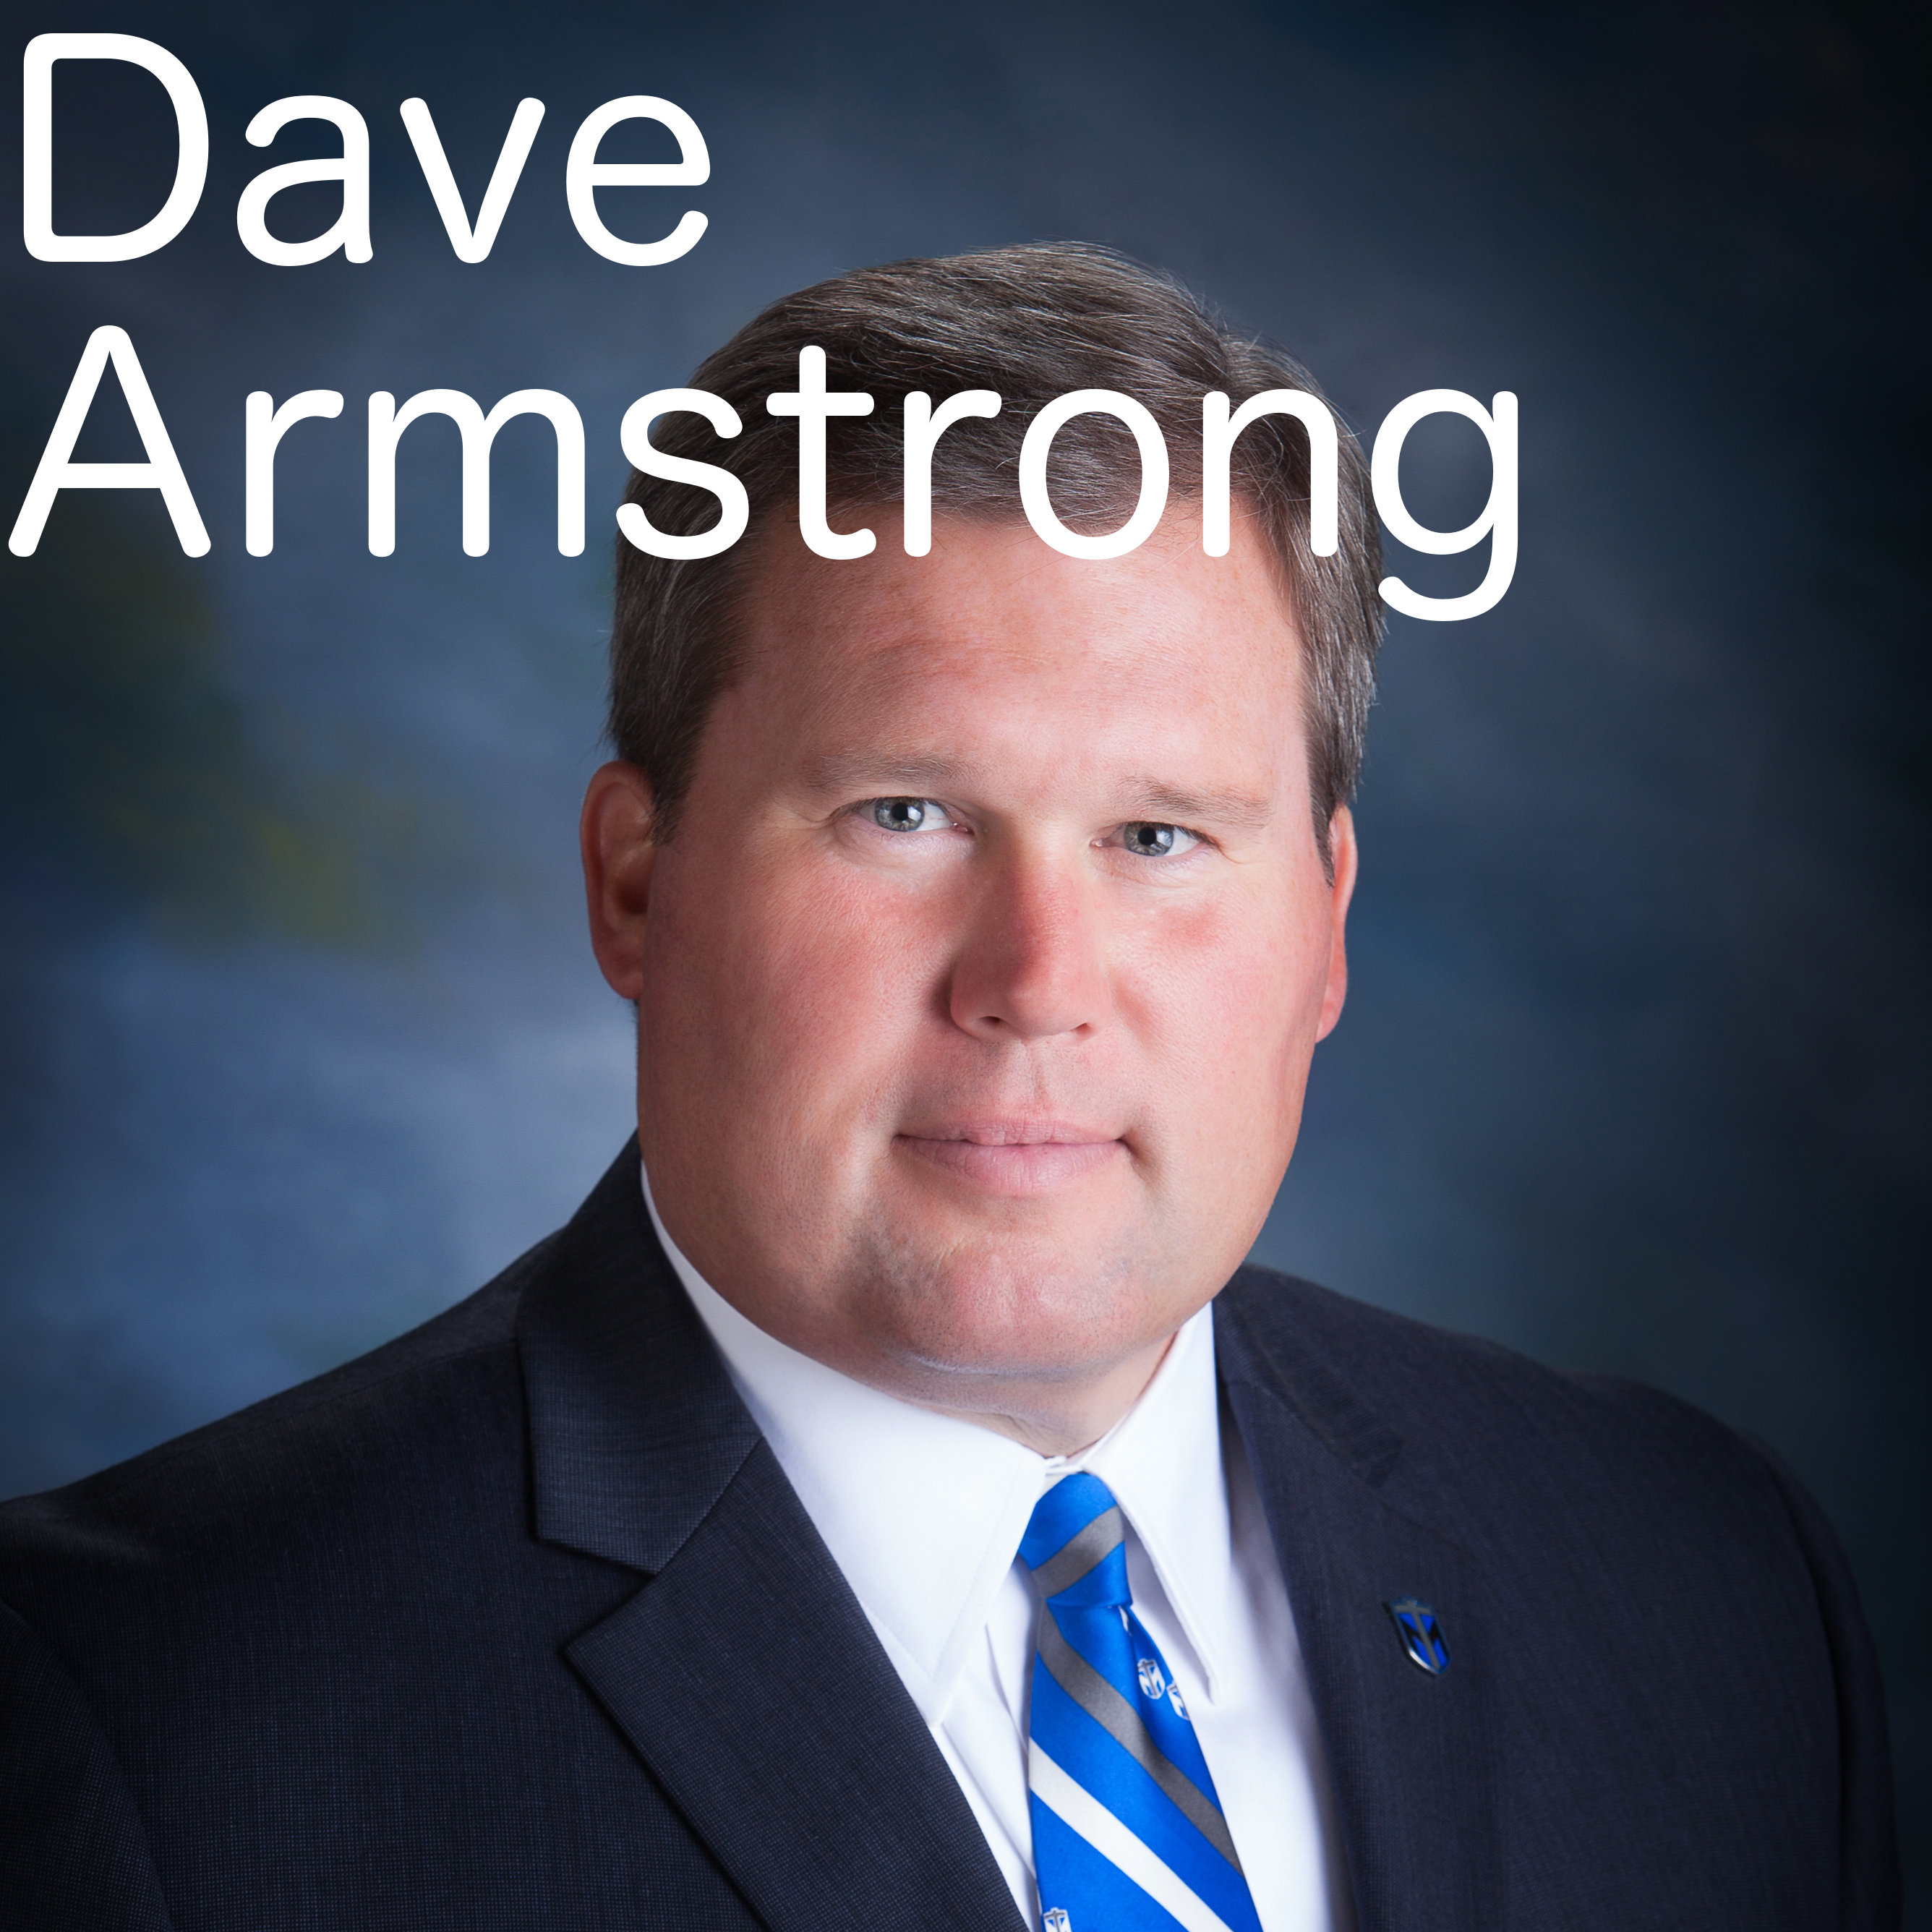 President Armstrong